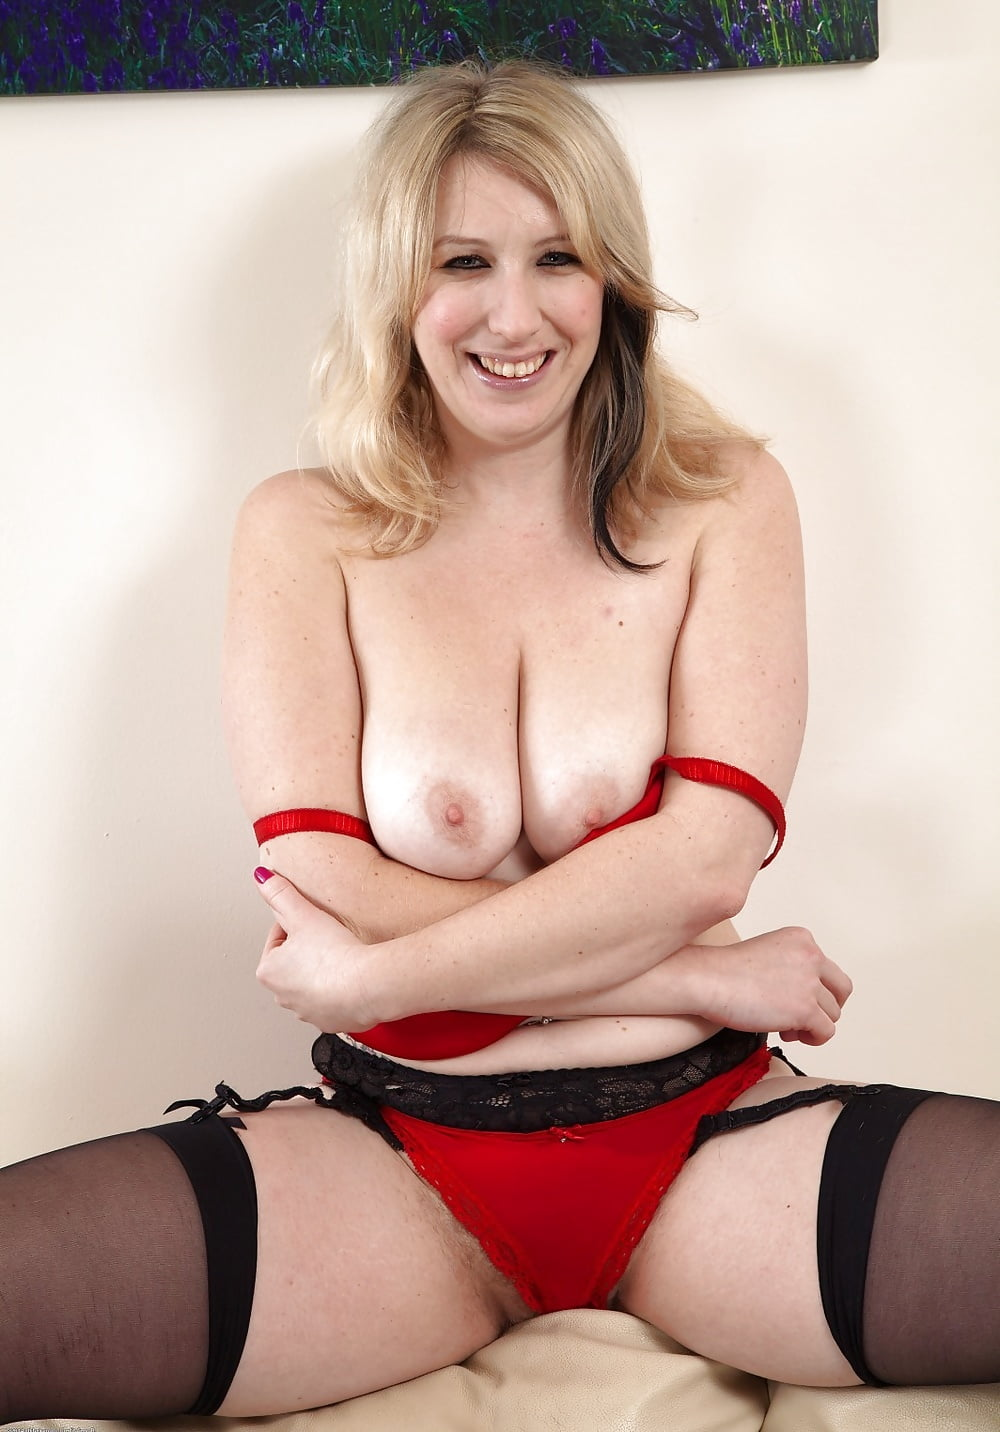 Mature hairy blonde nudes-9381